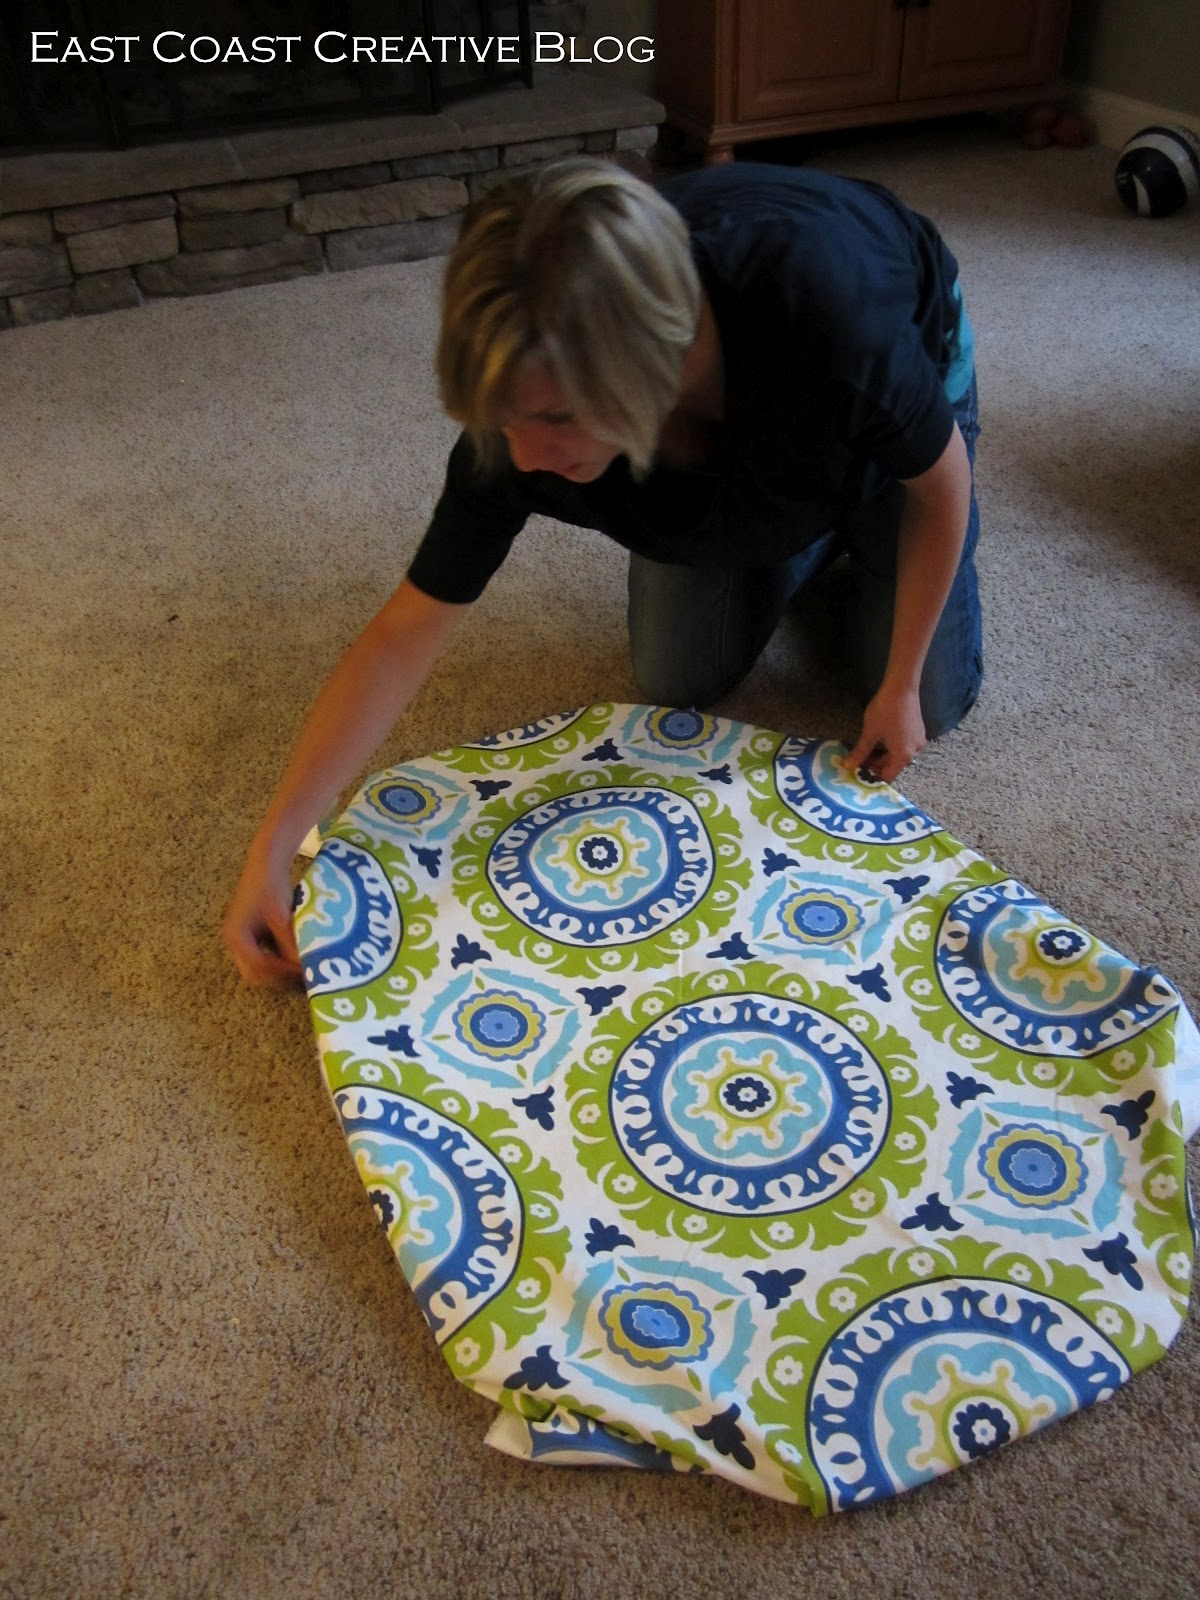 Can you paint rubber floor mats - Then Fold The Fabric Back About Halfway And Spray The Rubber Mat With Spray Adhesive Fold The Fabric Back Down Smoothing Out The Bubbles And Wrinkles As